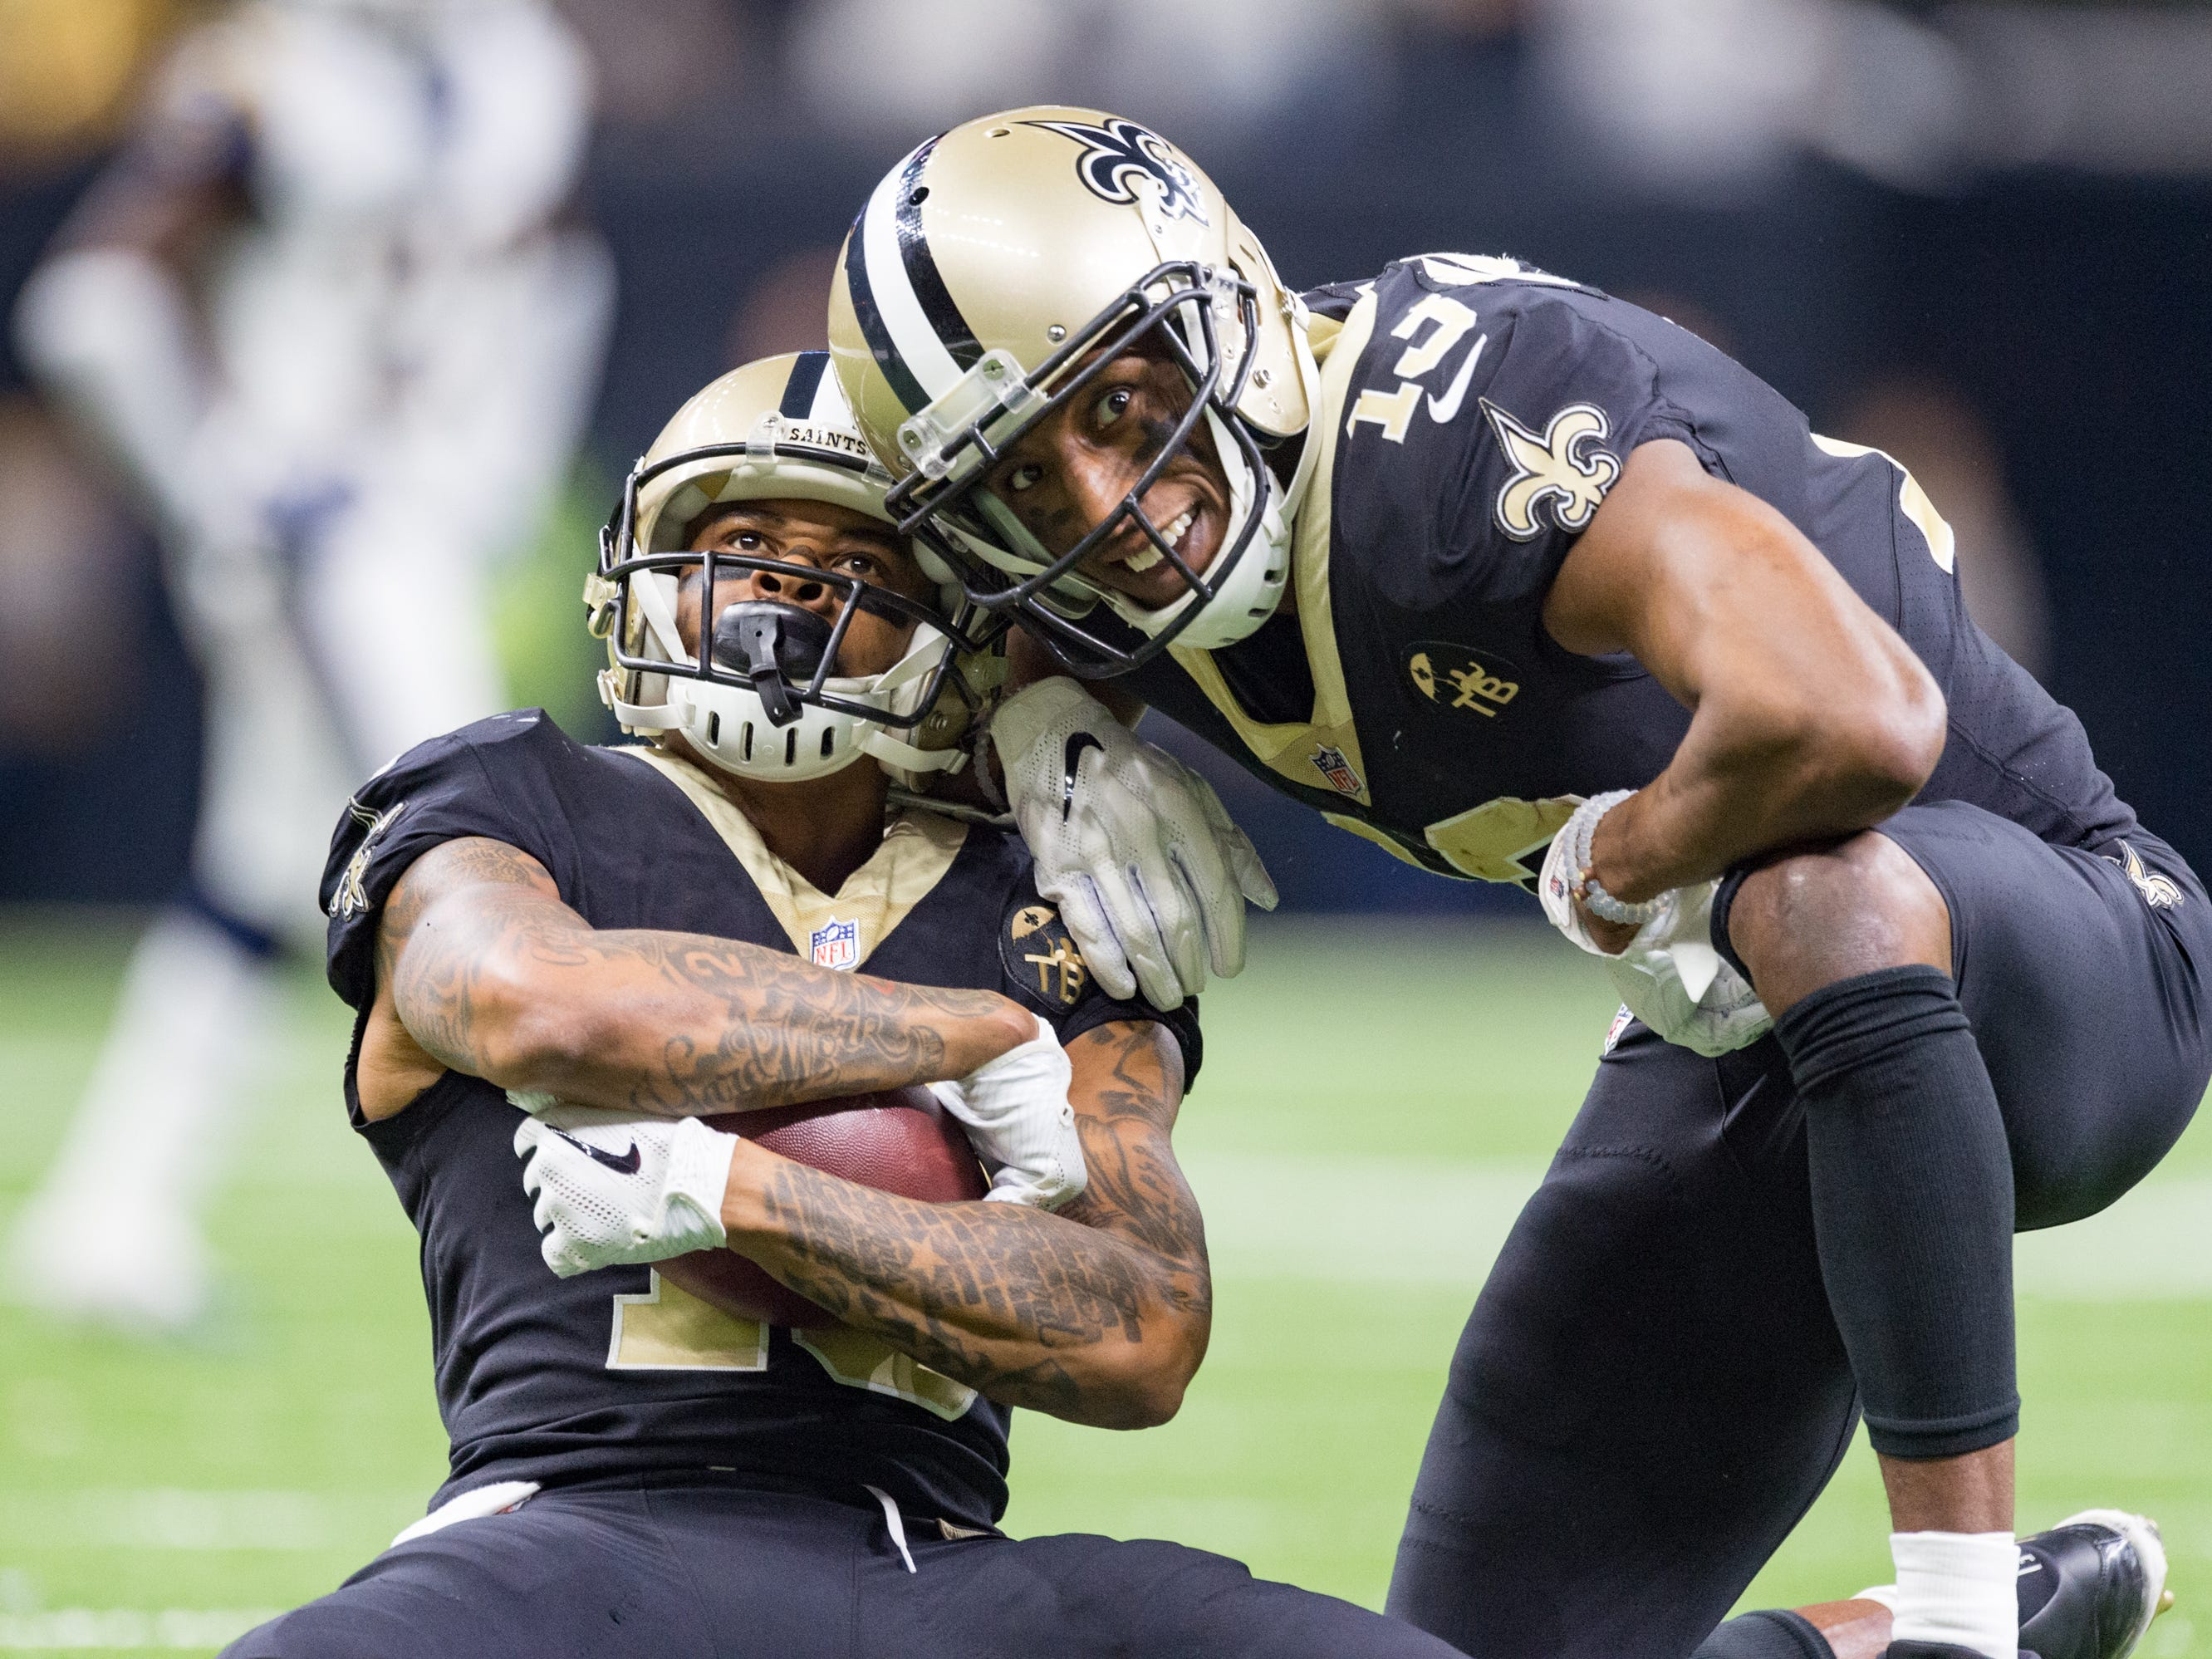 Saints receiver Ted Ginn Jr. makes a catch for a first down and poses for a photo with Michael Thomas during the NFC Championship playoff football game between the New Orleans Saints and the Los Angeles Rams at the Mercedes-Benz Superdome in New Orleans. Sunday, Jan. 20, 2019.